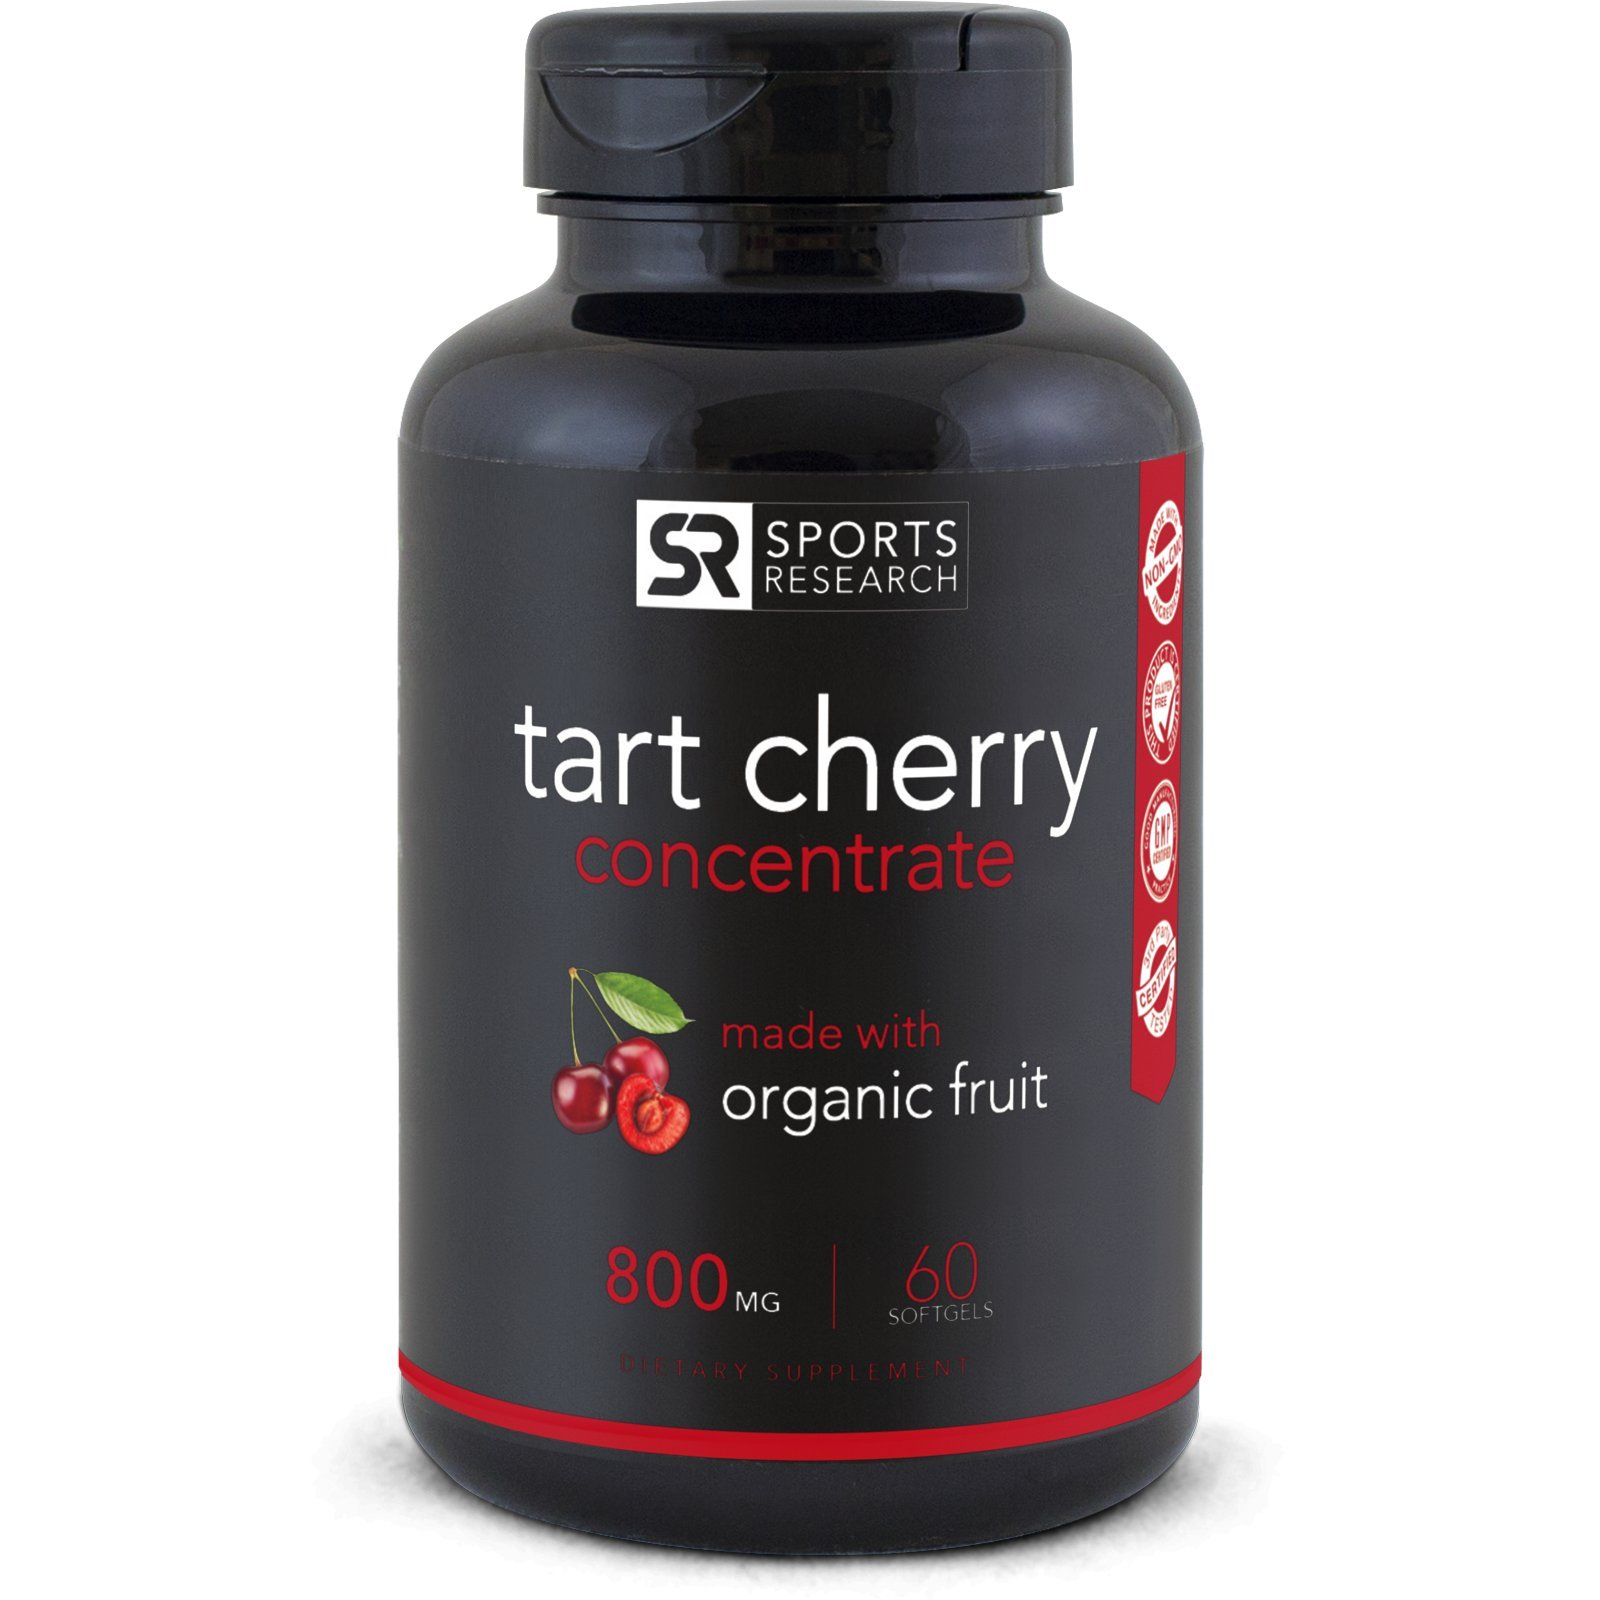 Tart Cherry Concentrate - Made from Organic Cherries; Non-GMO & Gluten Free; Packed with Antioxidants and Flavonoids - 60 Liquid Softgels, 2 Month Supply!